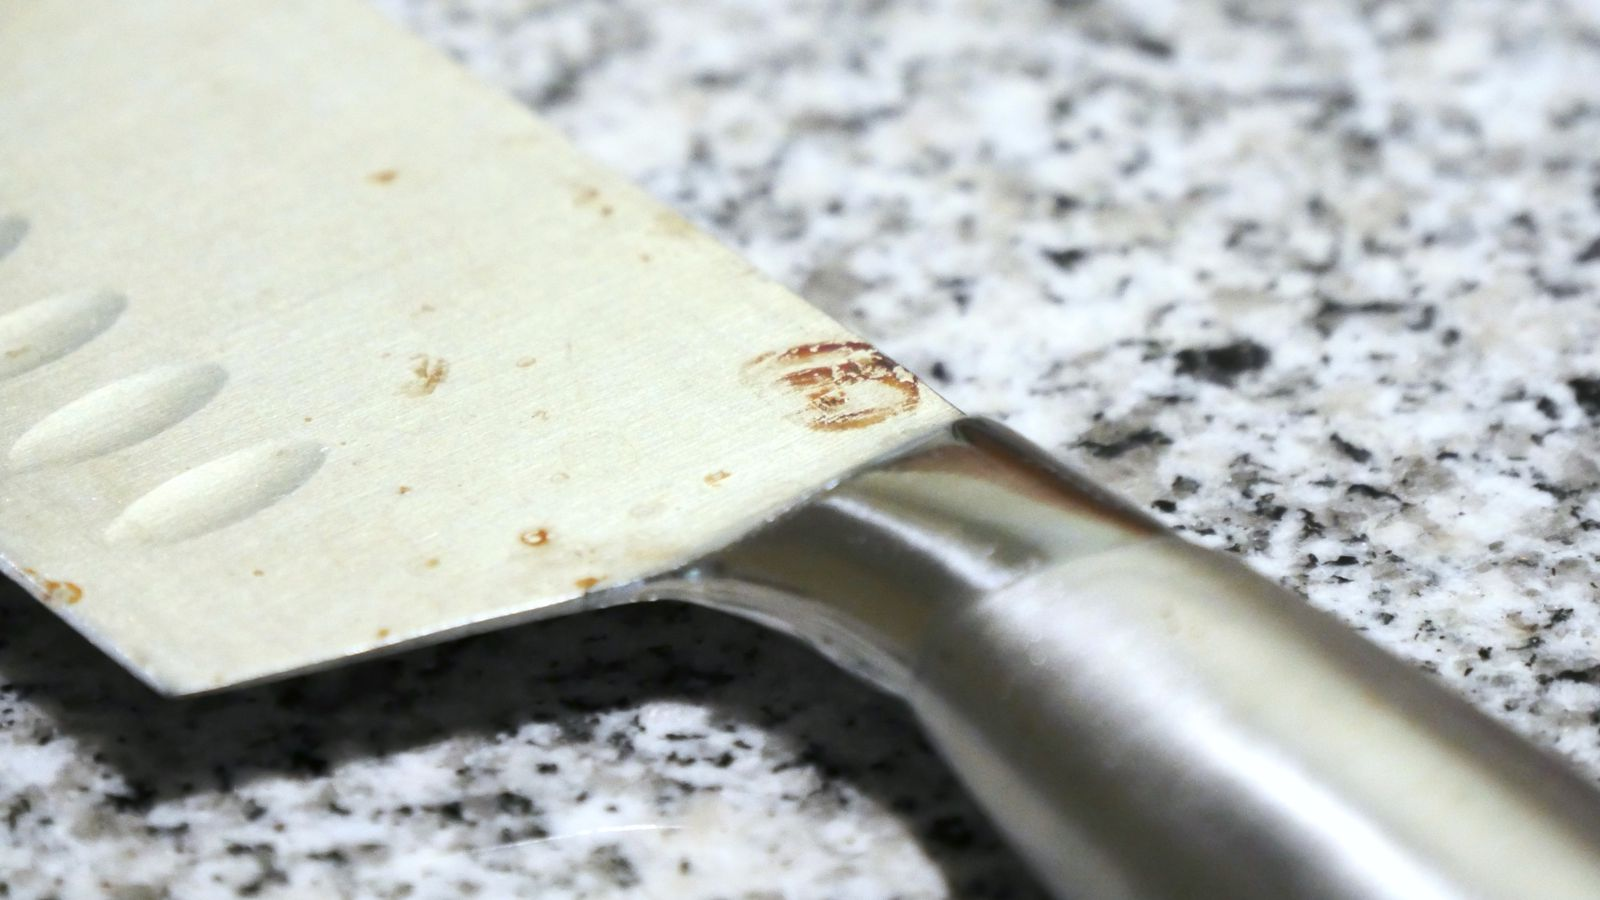 Marvelous Methods To Remove Rust From Cutlery And Scissors